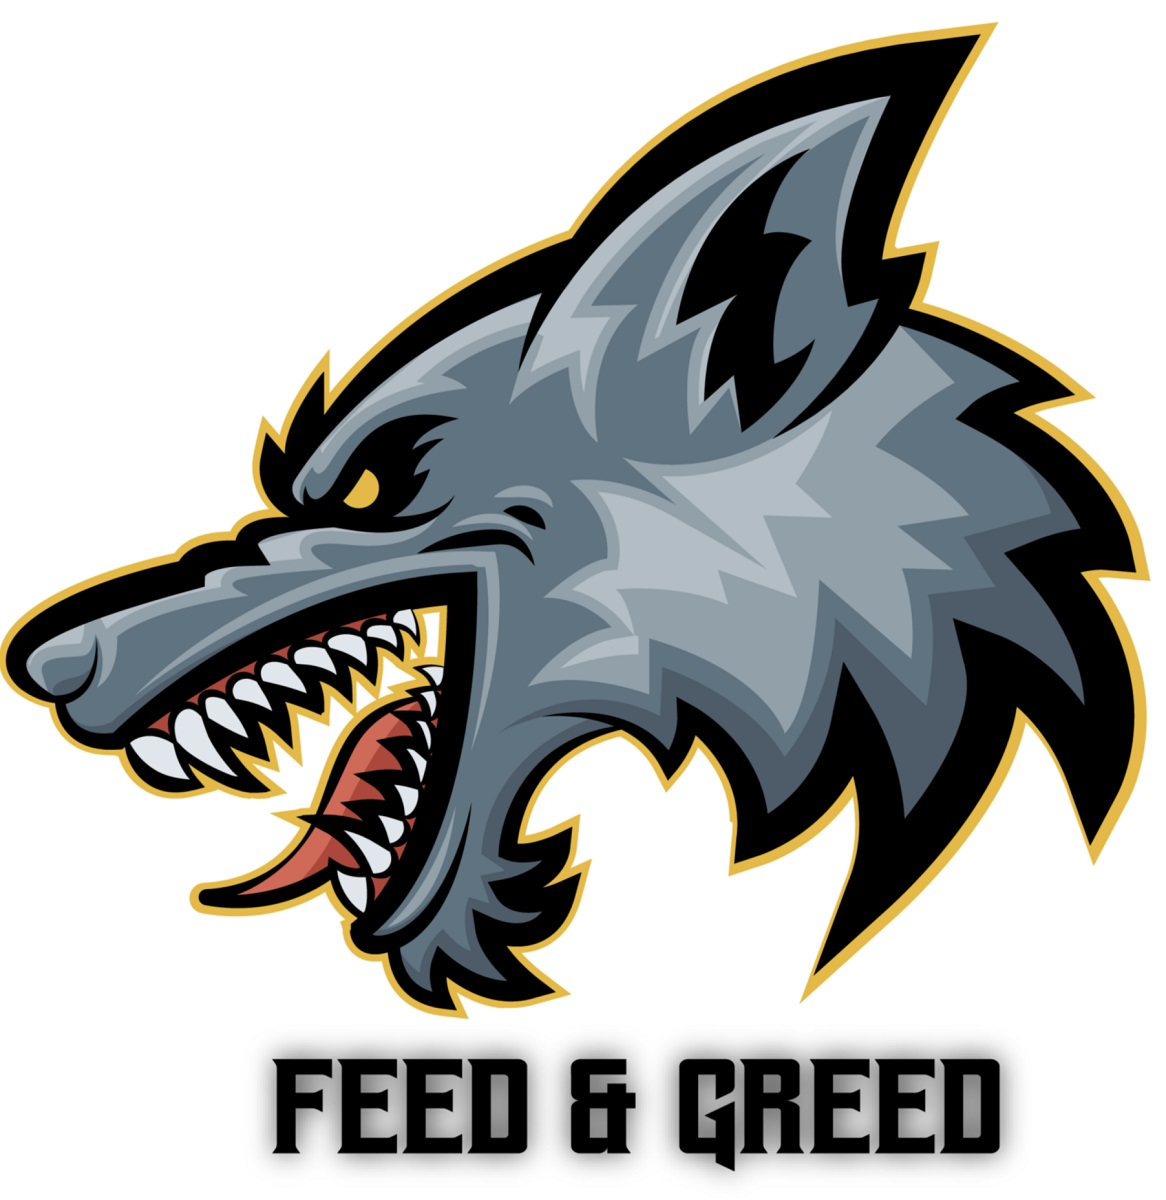 Feed & Greed